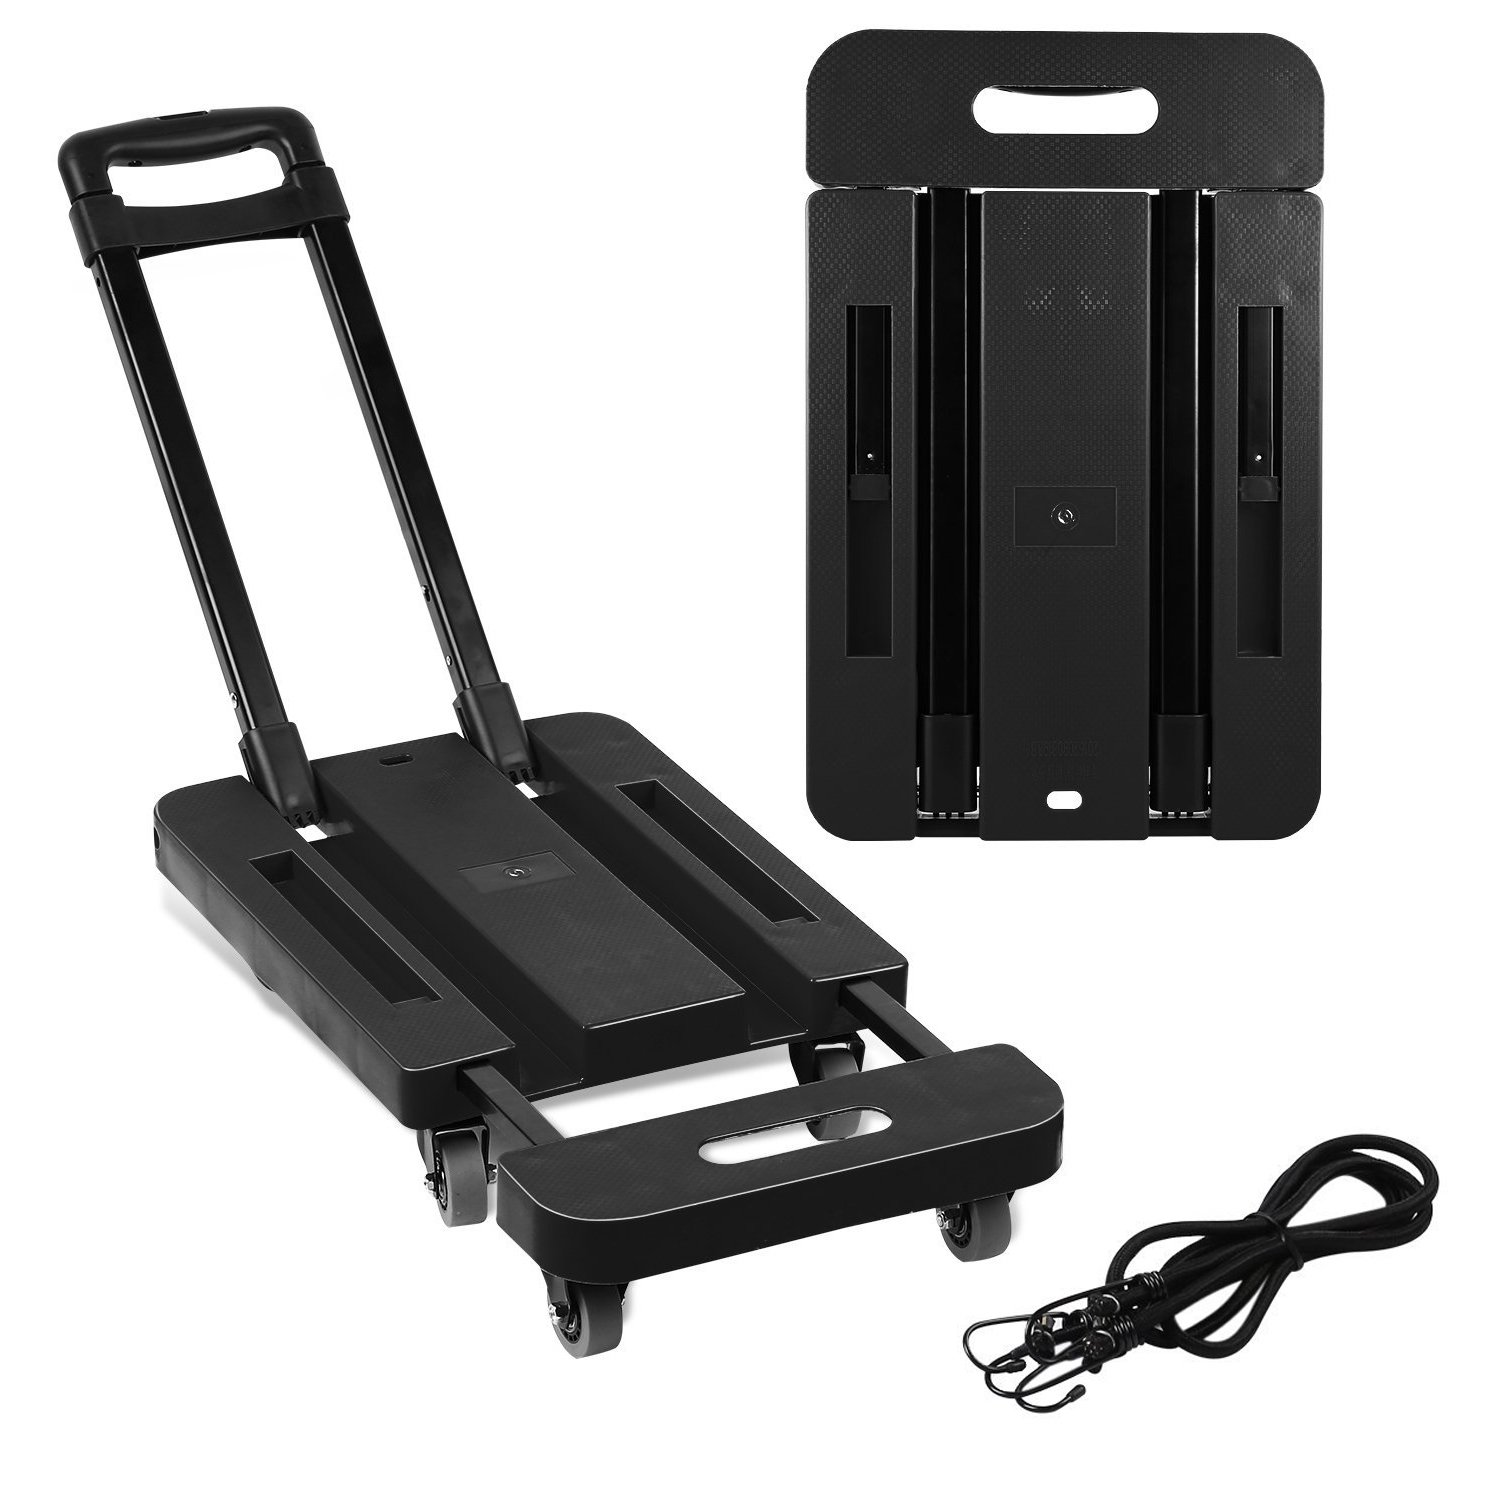 Foldable 6 Wheels Hand Trolley, Extendable Flat Luggage Cart Hand Trolley with 3-fold Handle & 2 supports strips